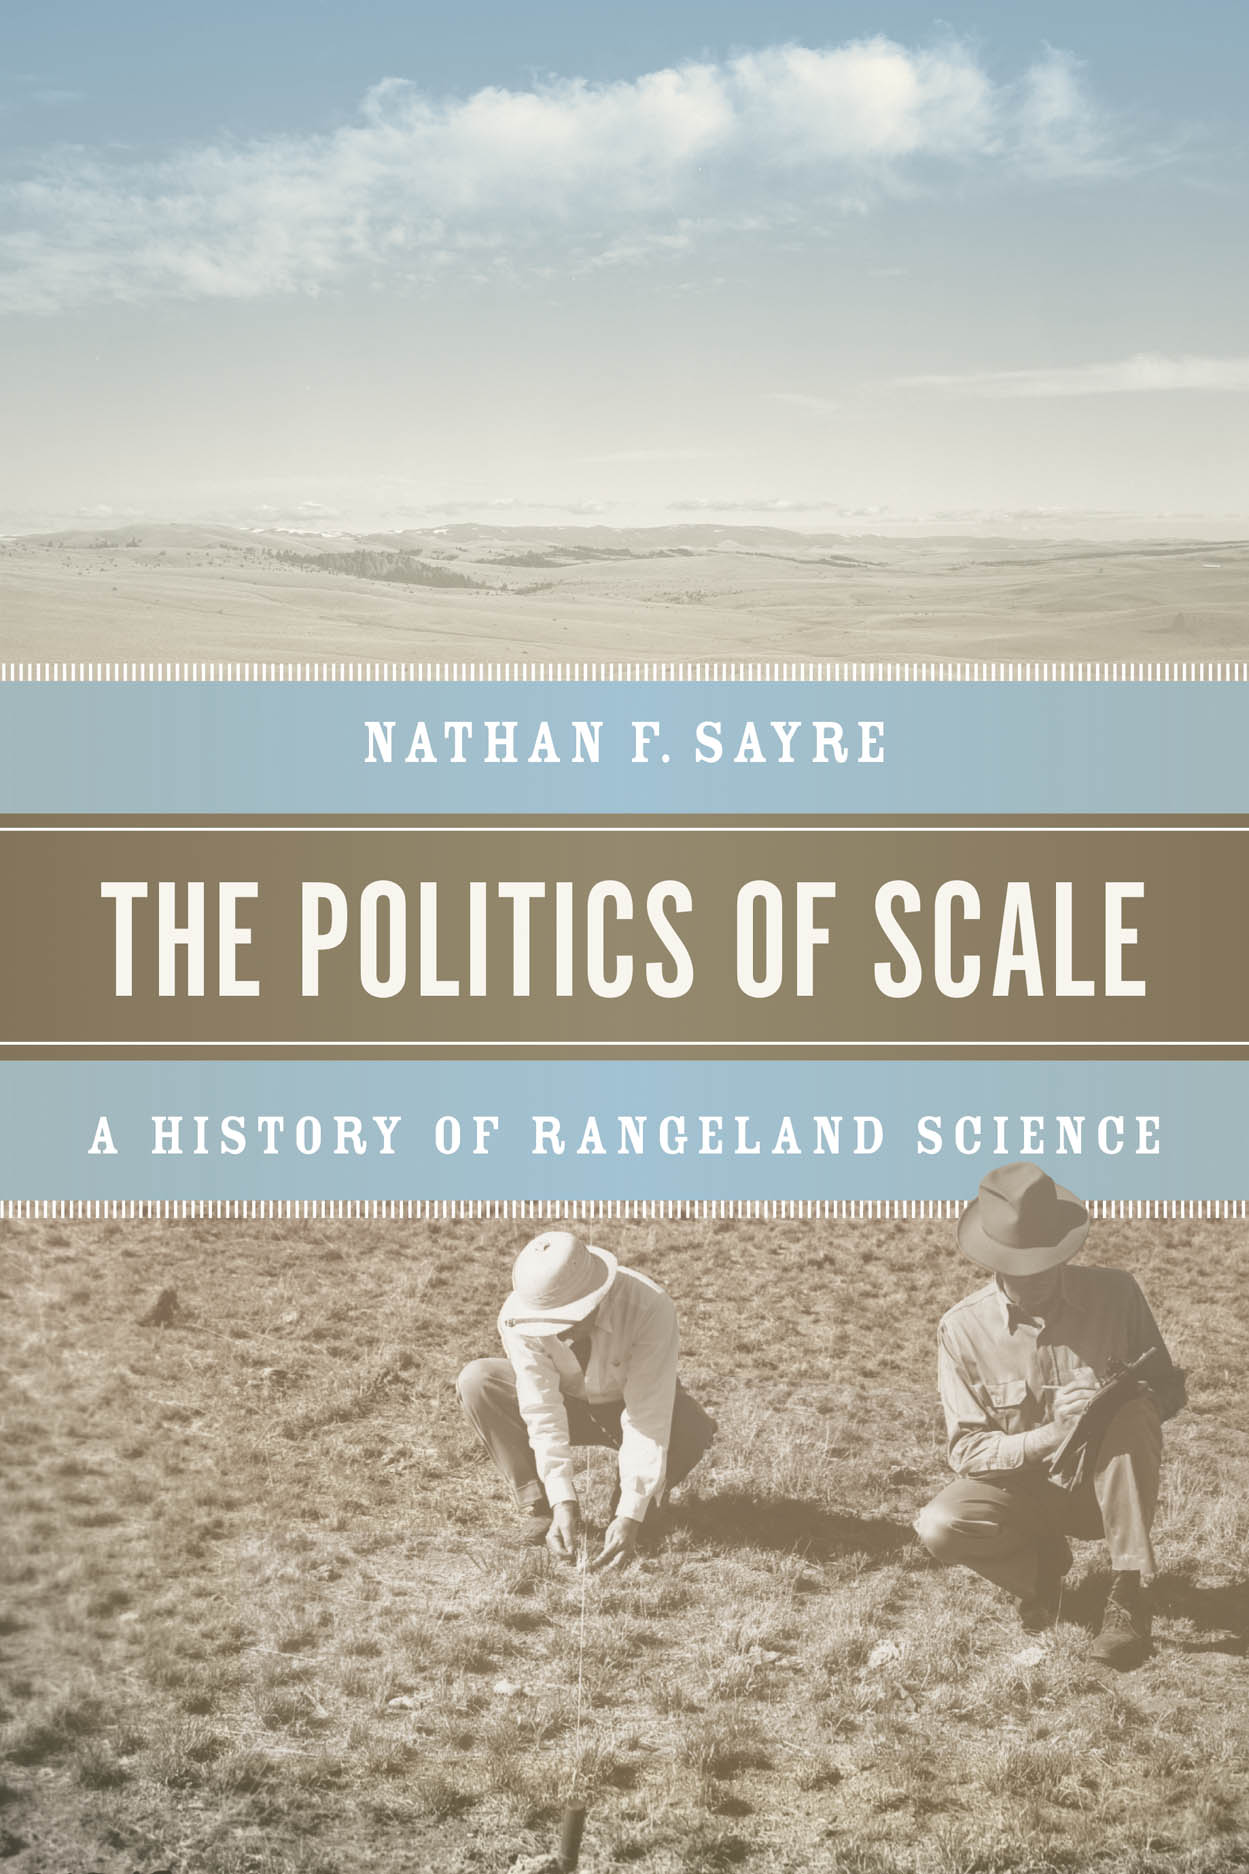 A great primer on rangeland science as well as scientific hubris more generally.